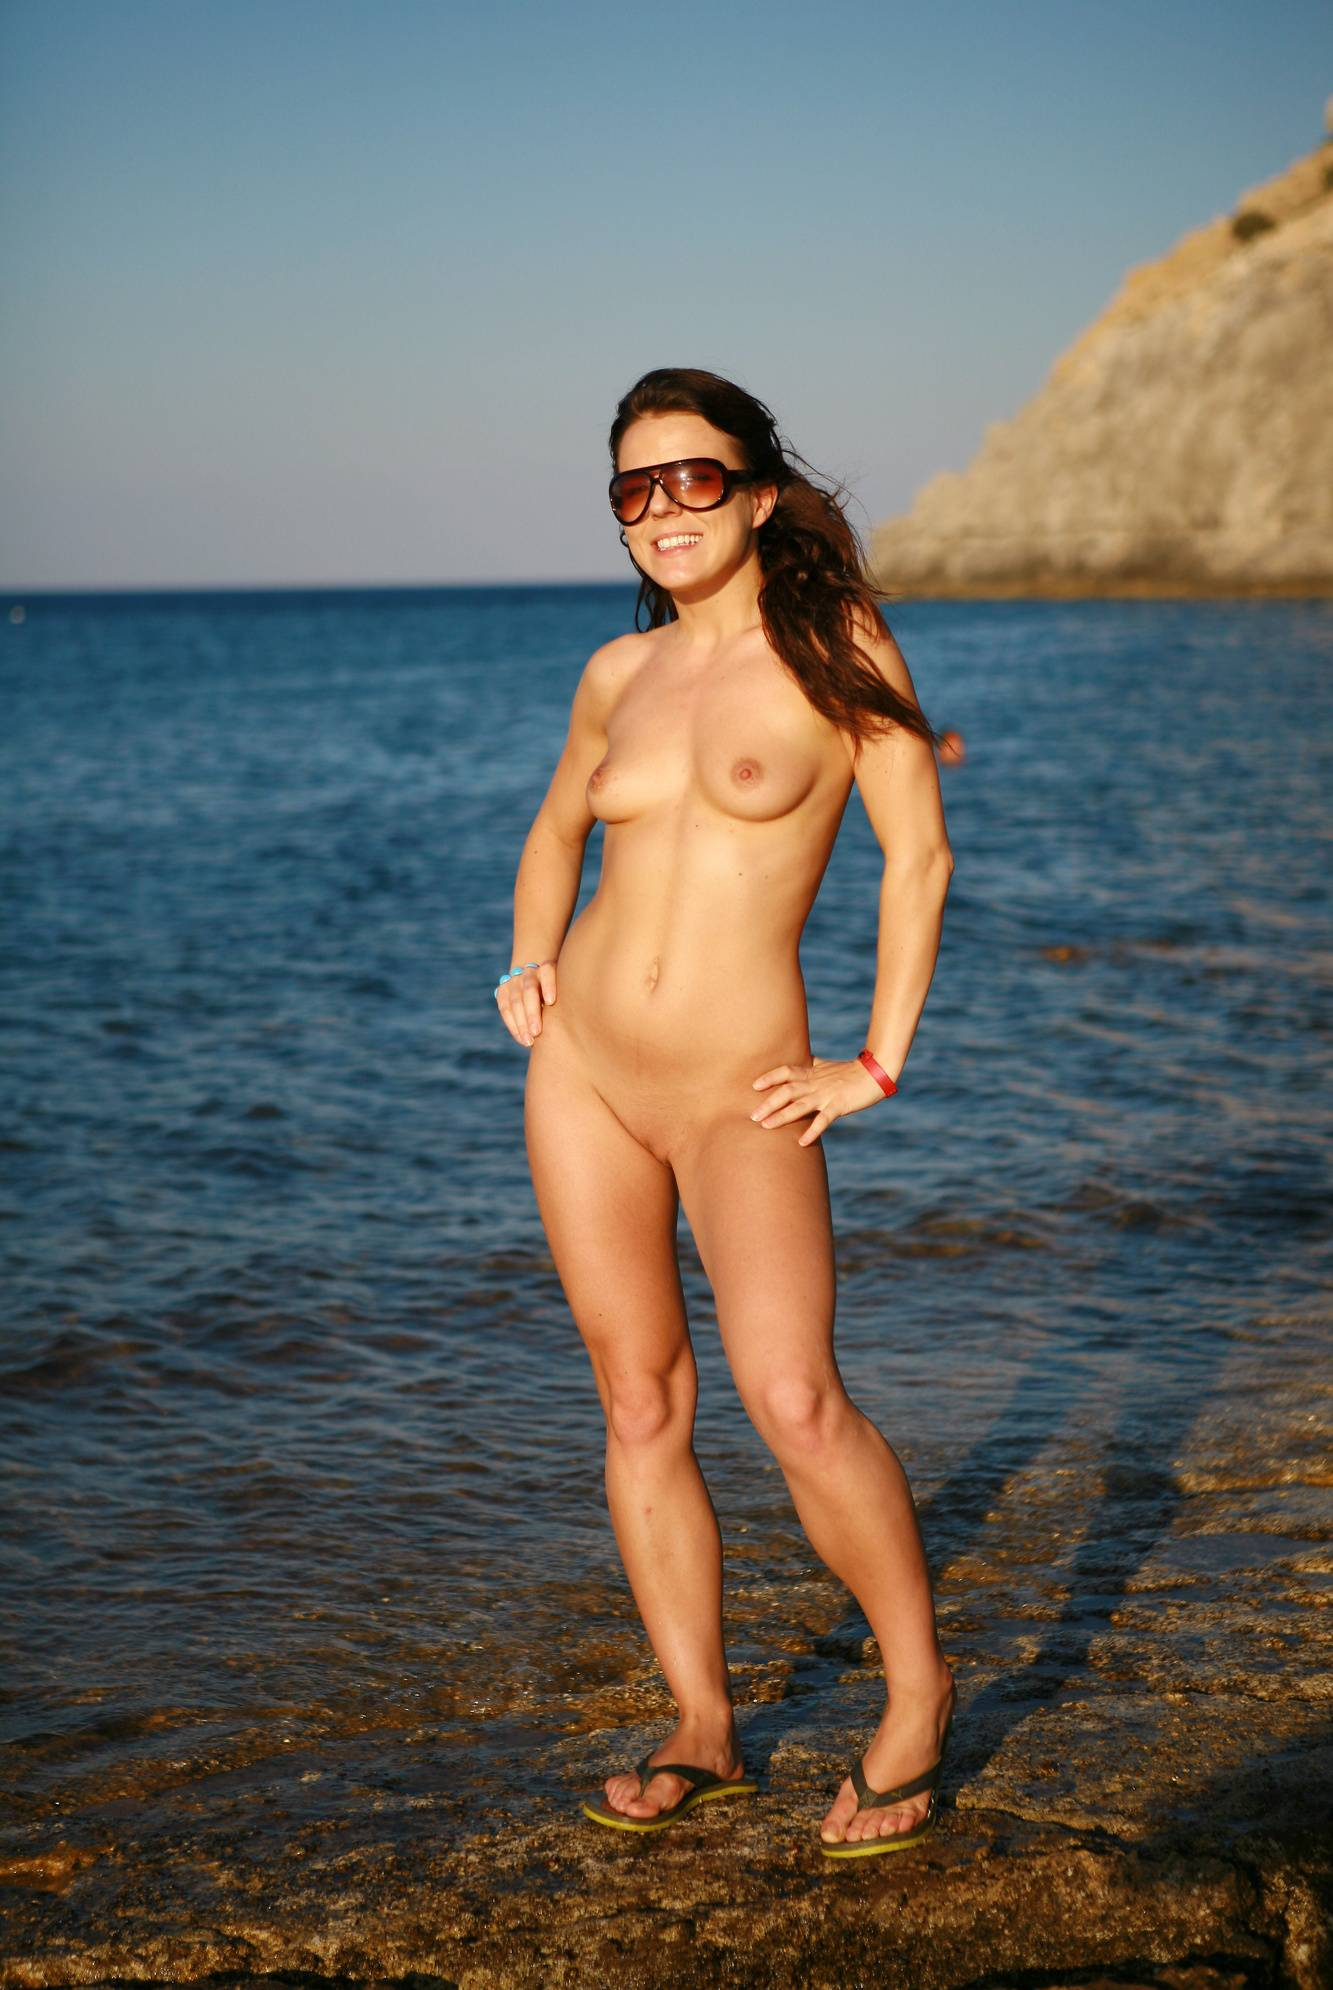 Nudist Pics Greek Island Hoppers - 1